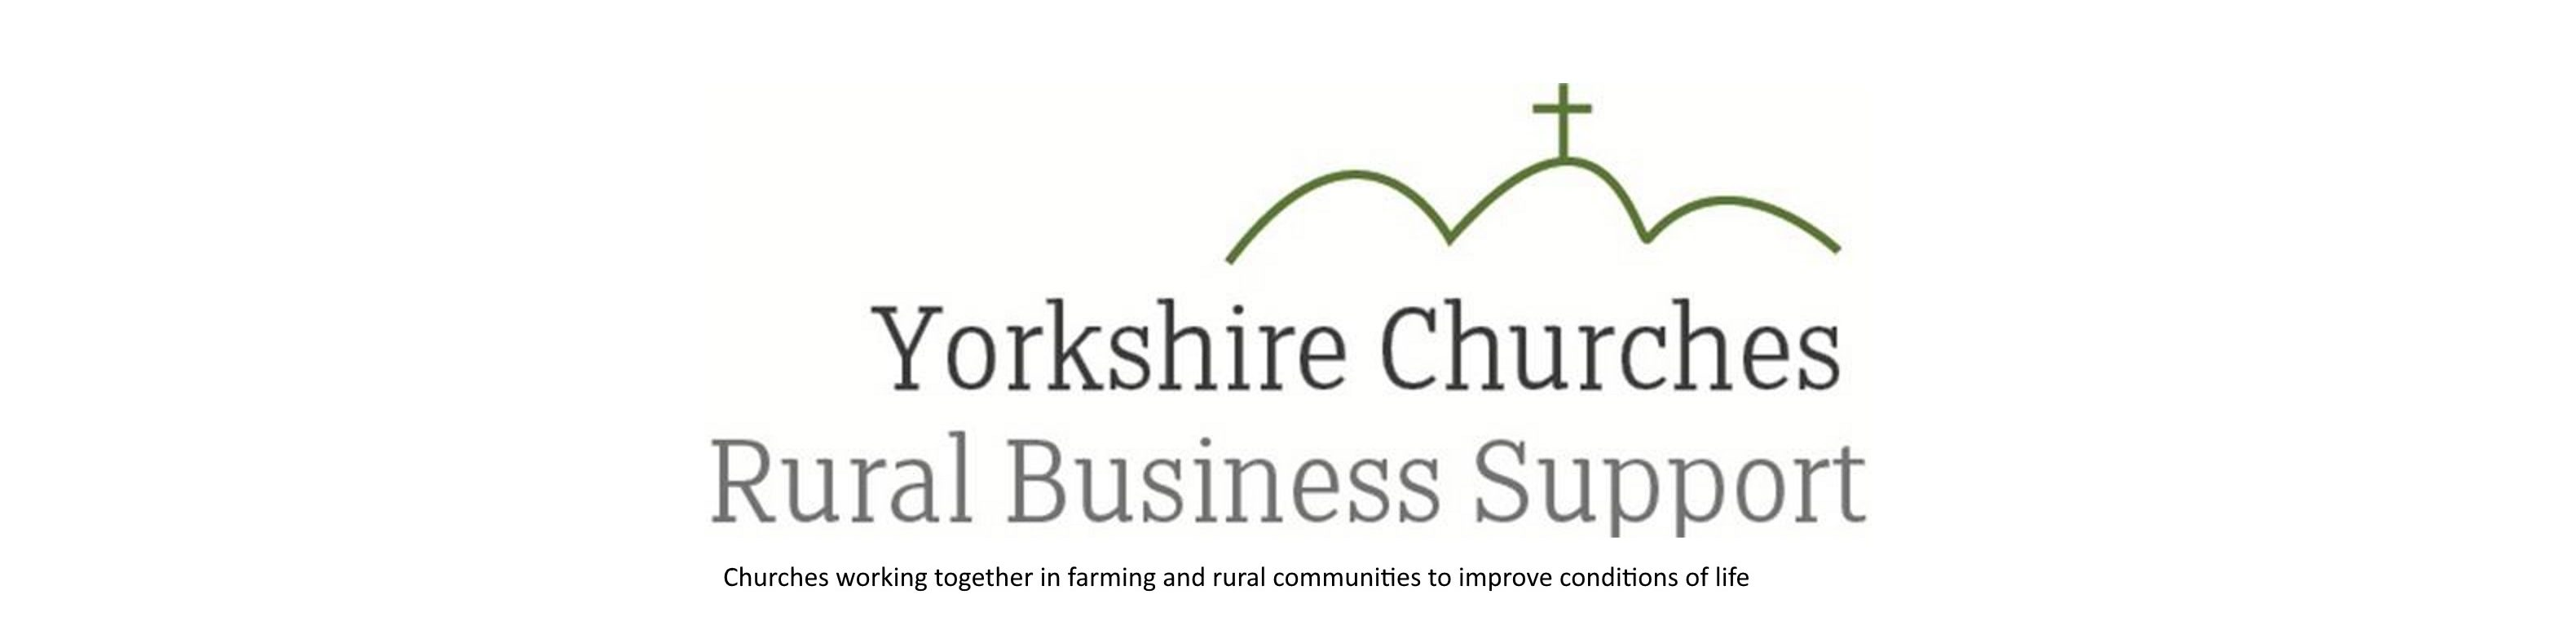 Yorkshire Churches Rural Business Support